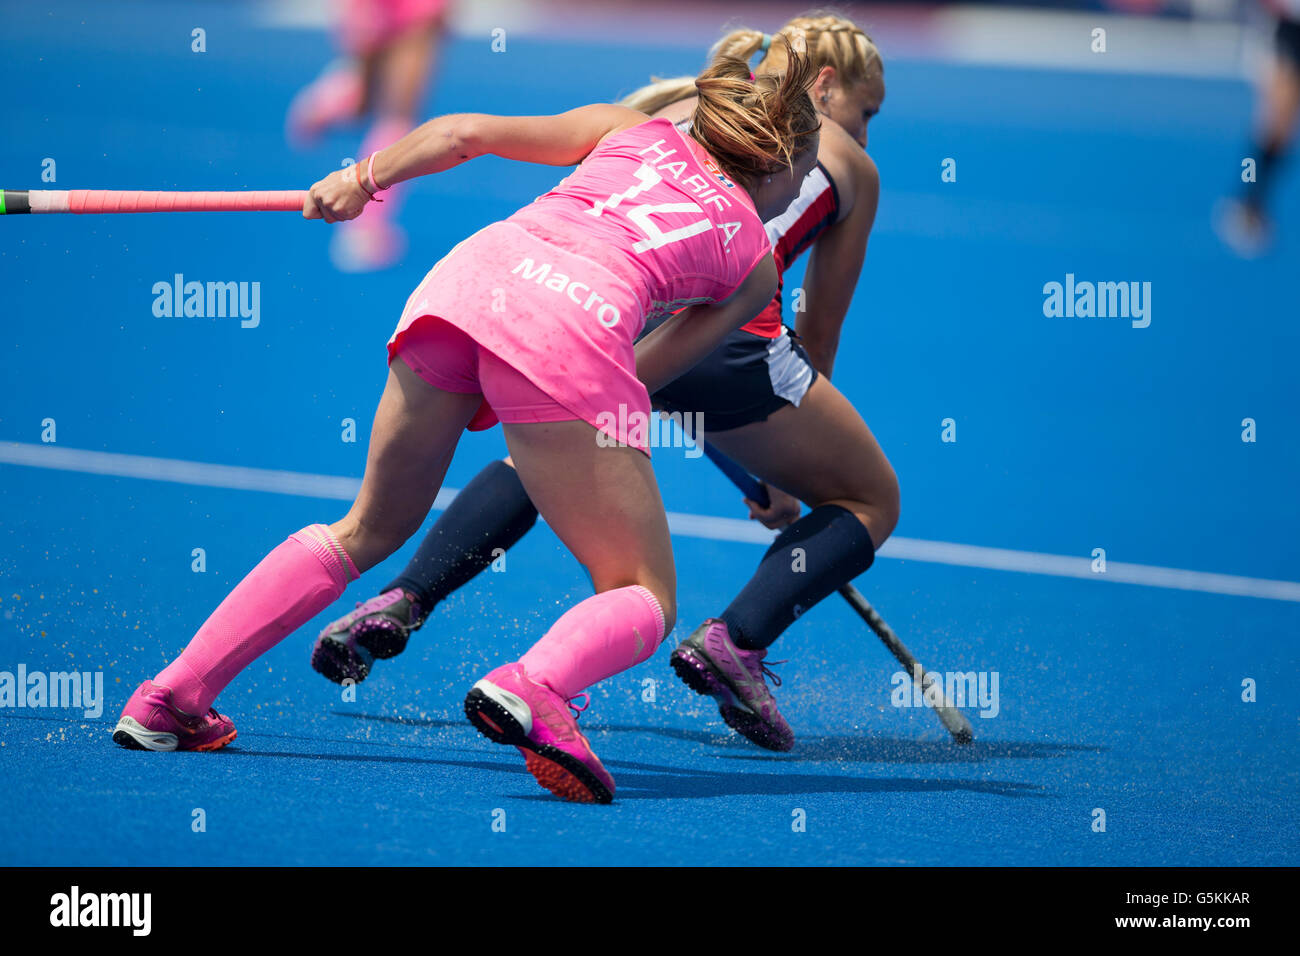 Investec Womens Hockey Champions Trophy 2016 Queen Elizabeth Olympic Park June Agustina Habif Argentina